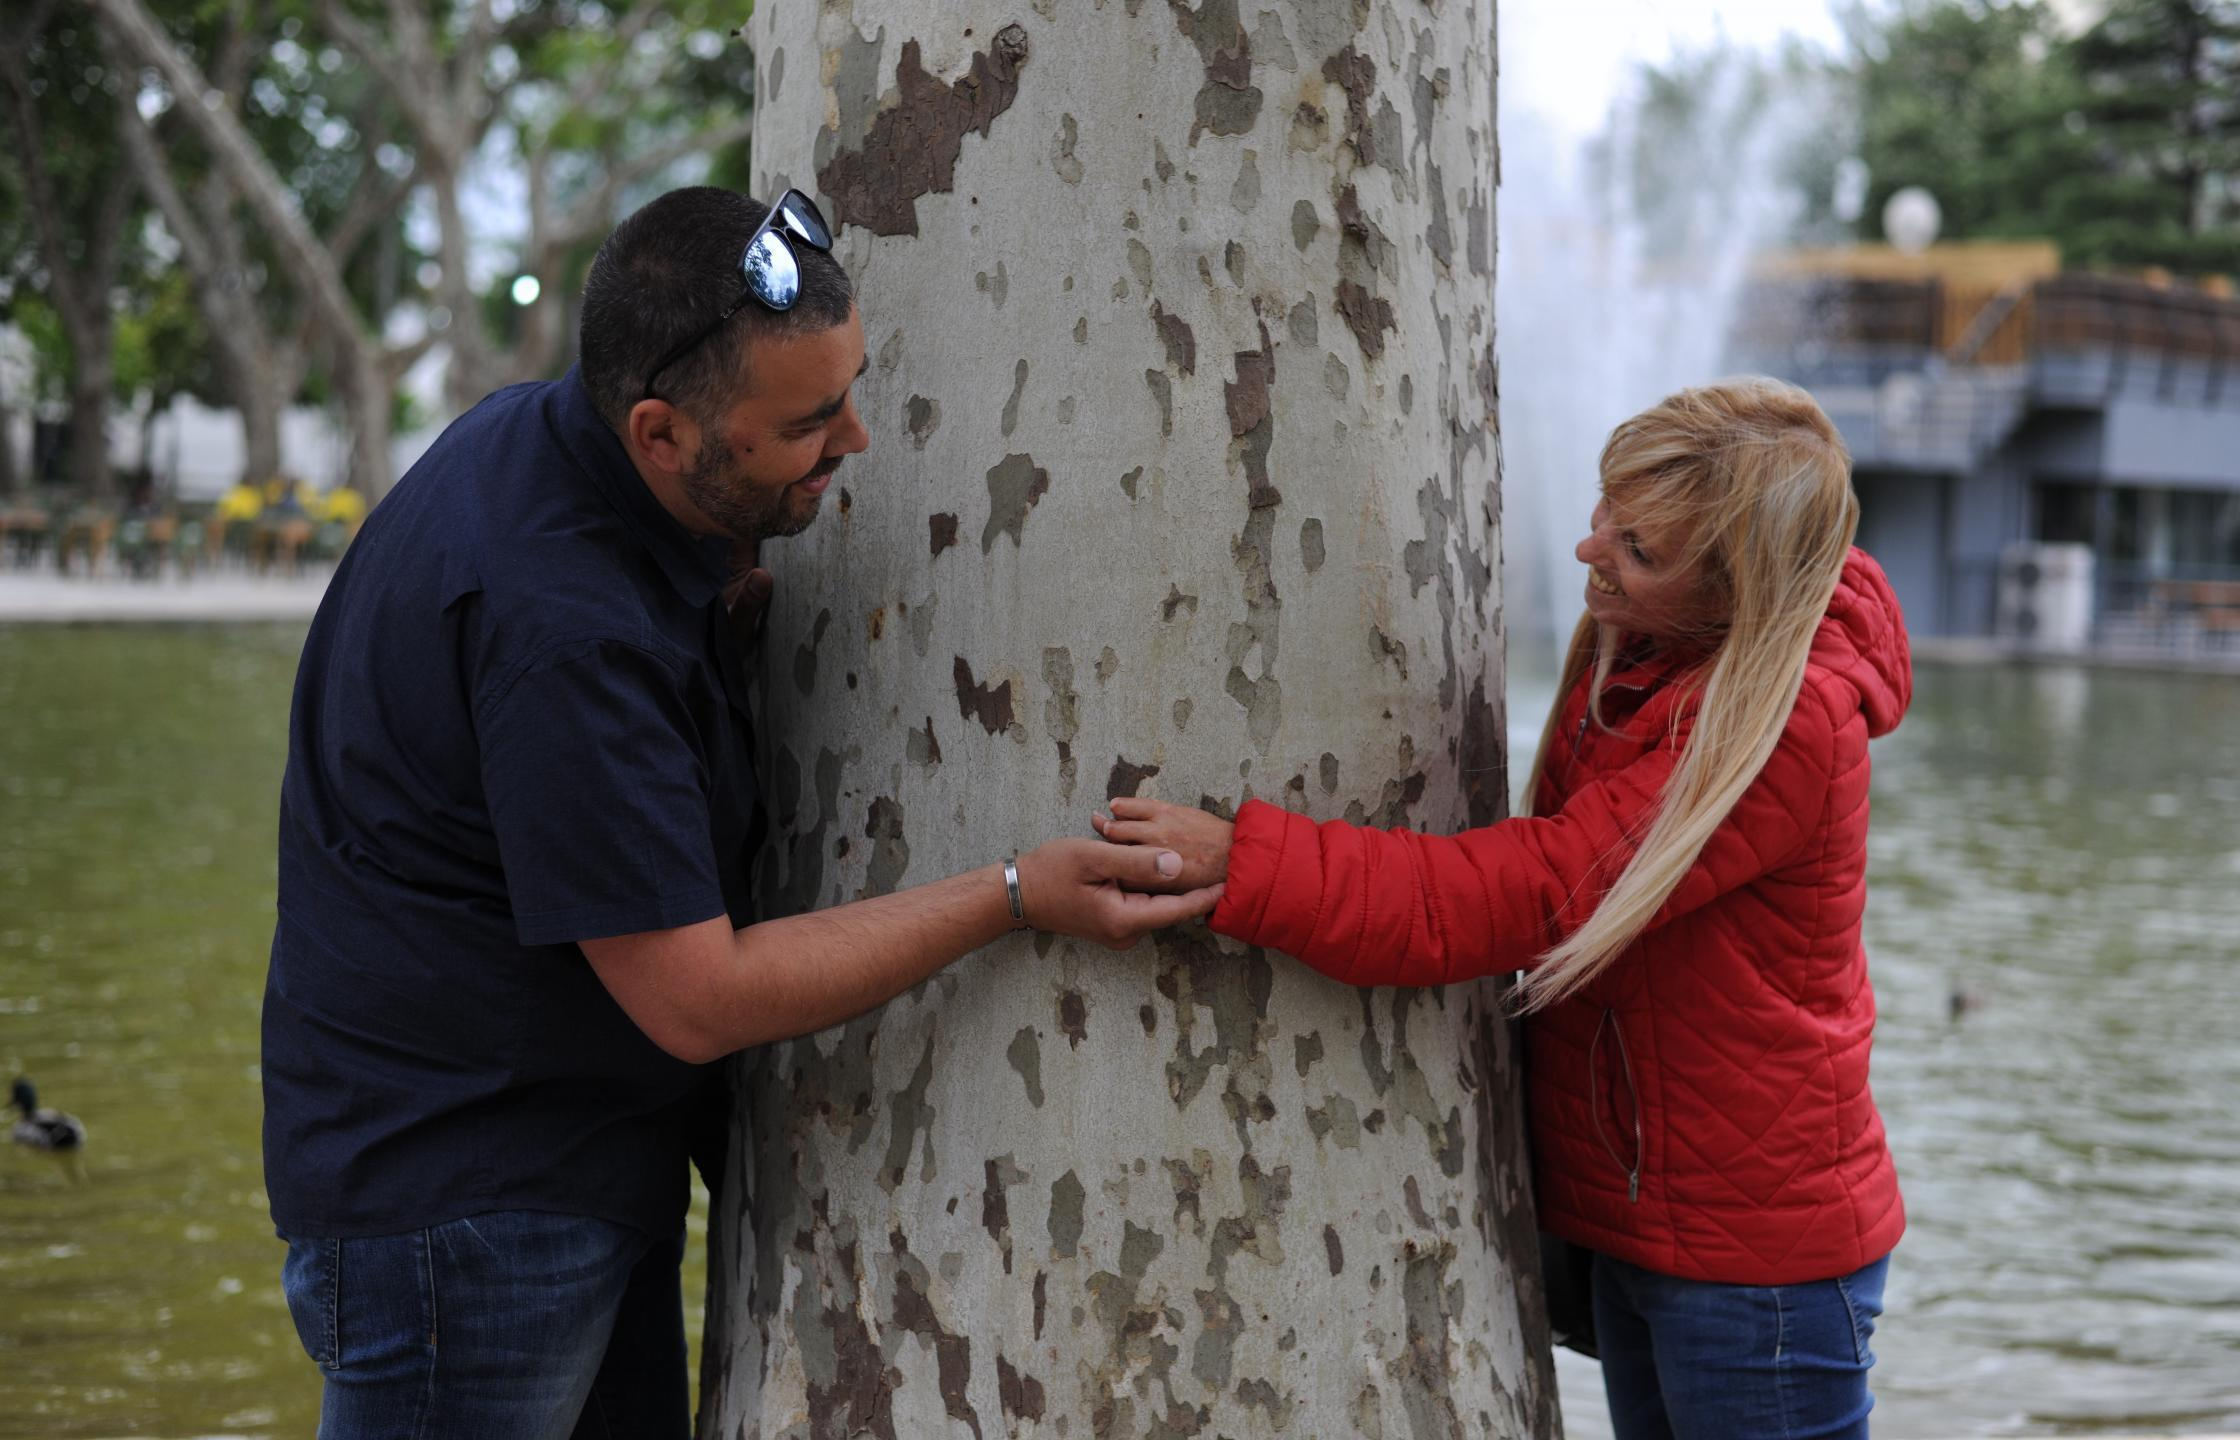 Rui and Rute hugging a tree from either side